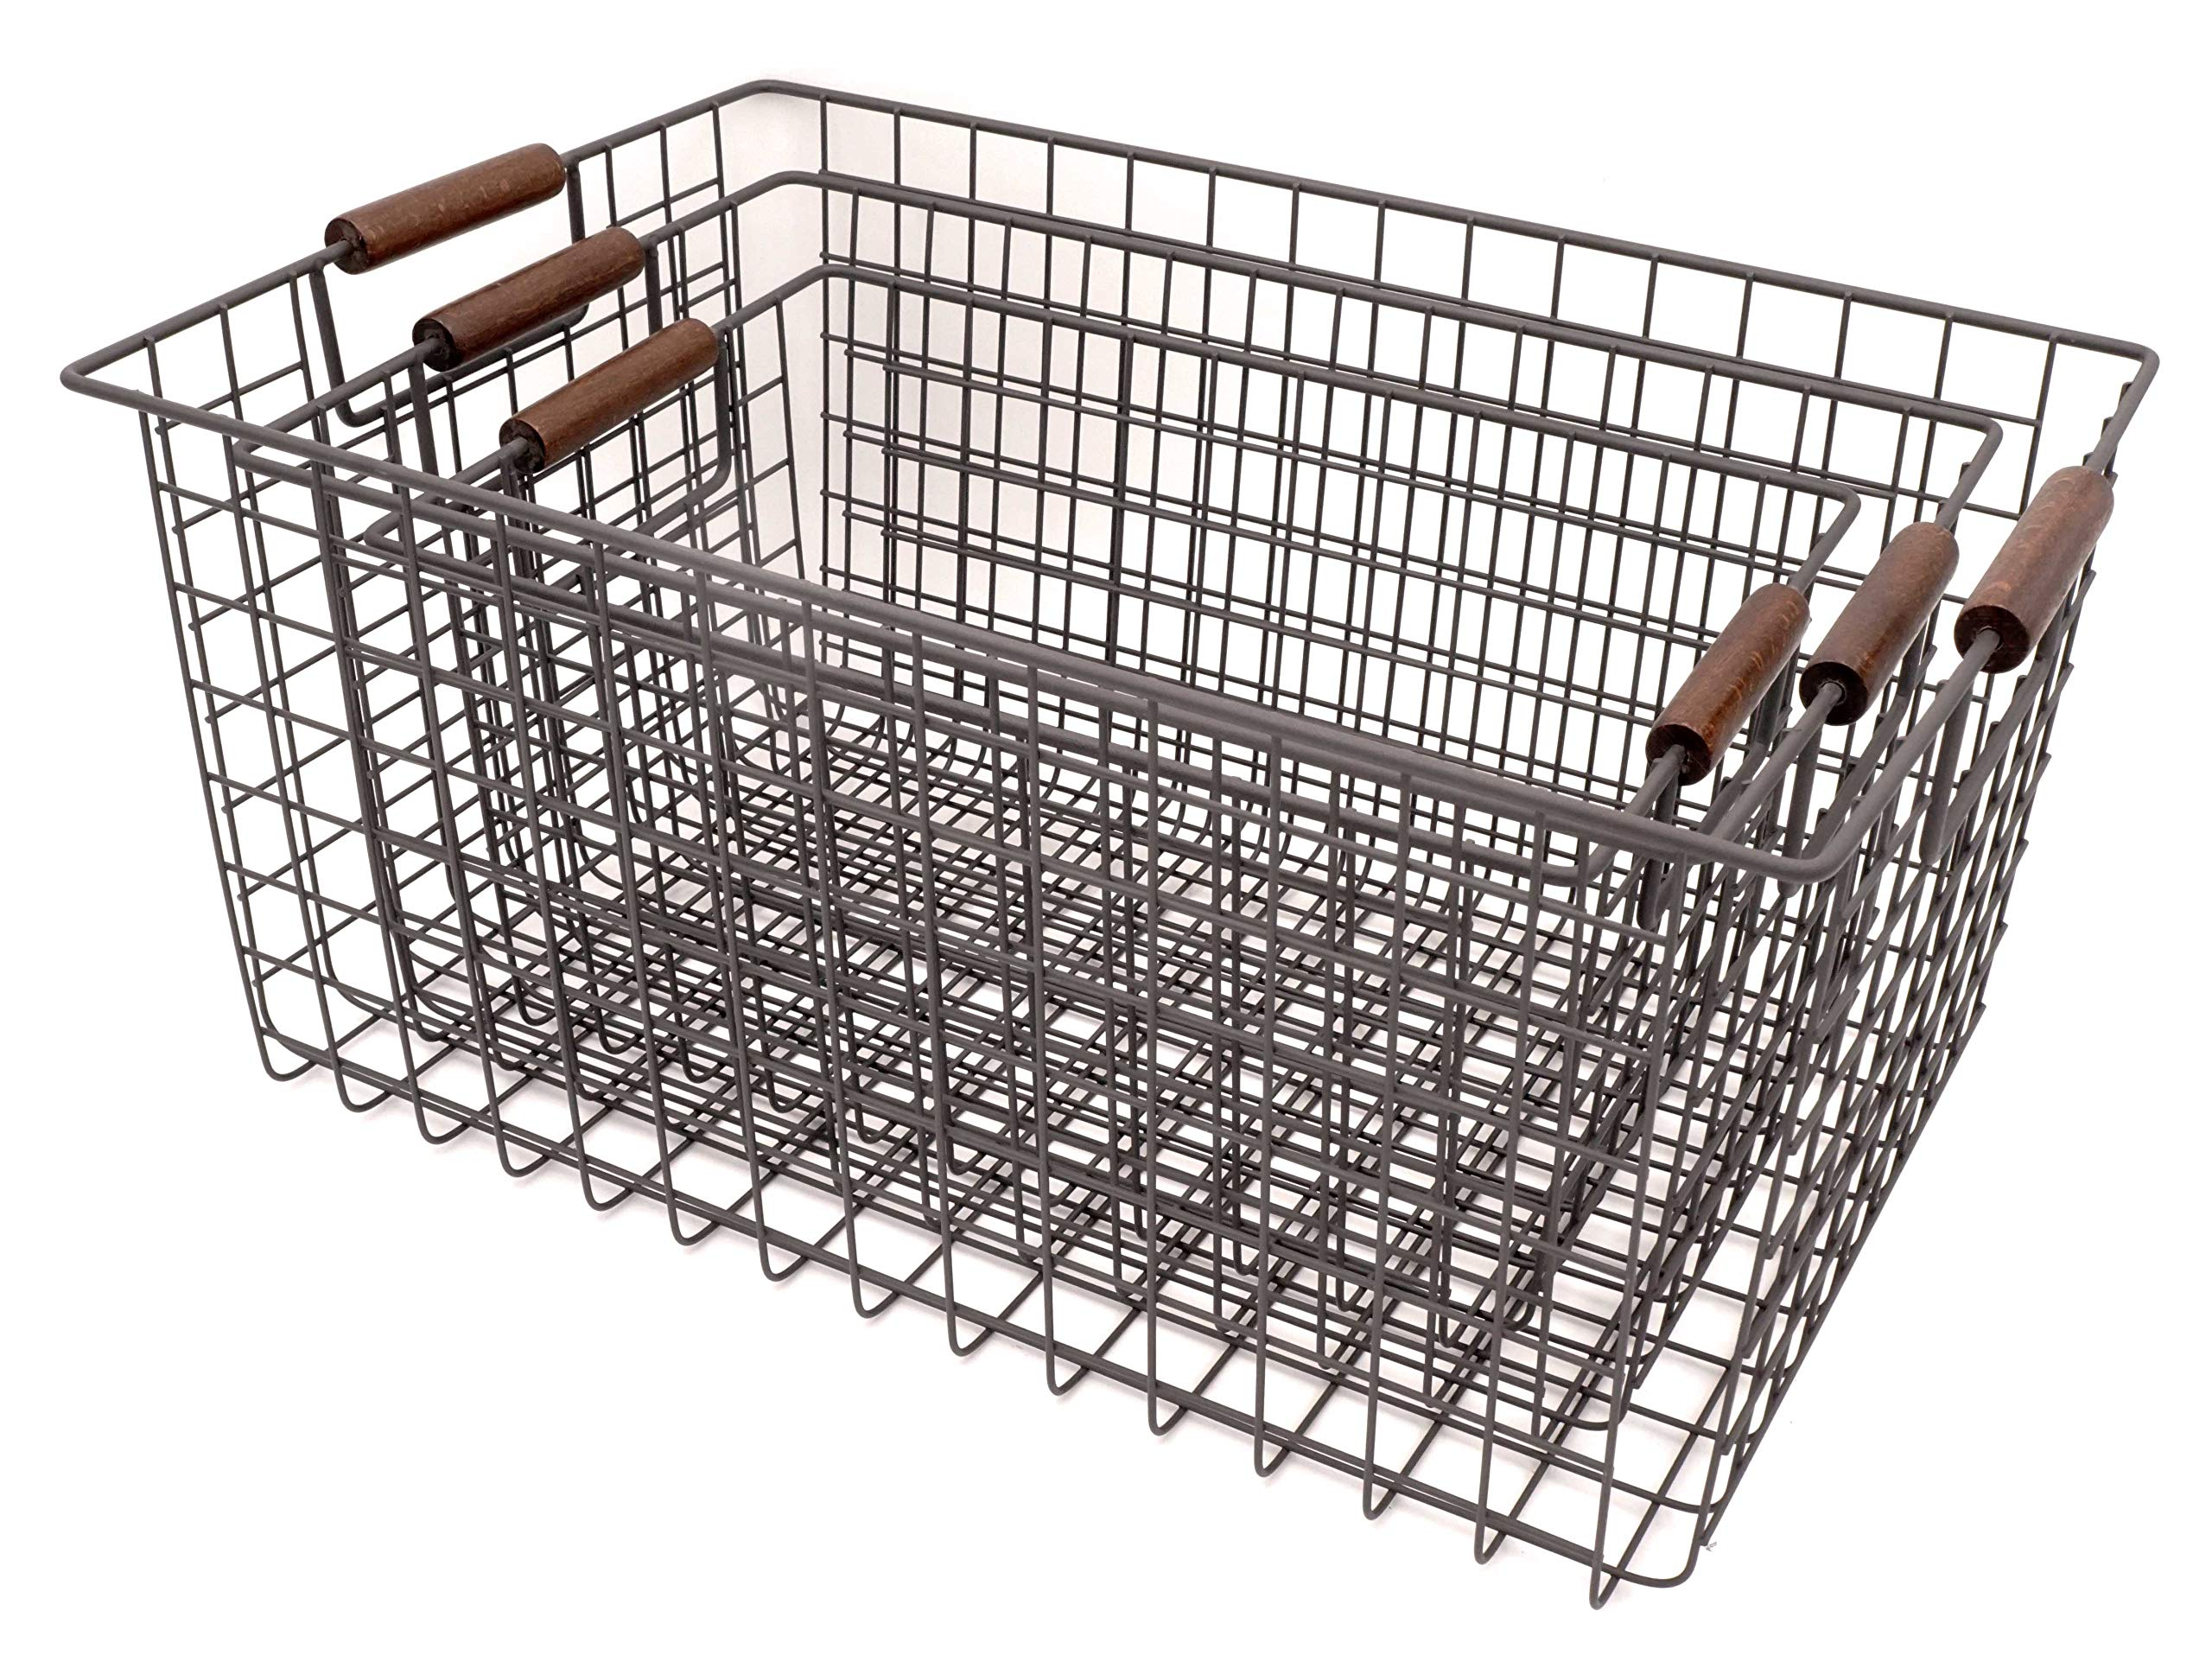 KeKaBox Set of 3 Metal Wire Nesting Storage Baskets with Wood Handles by KeKaBox (Image #3)